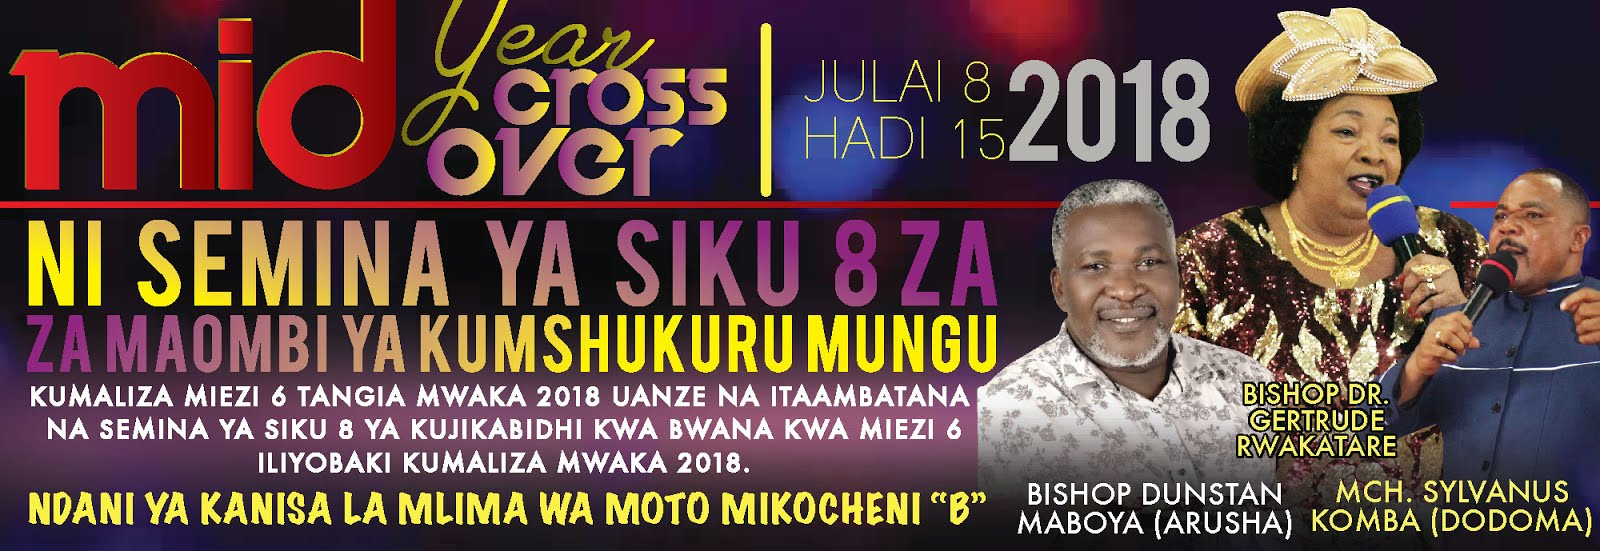 MID YEAR CROSS OVER 2018